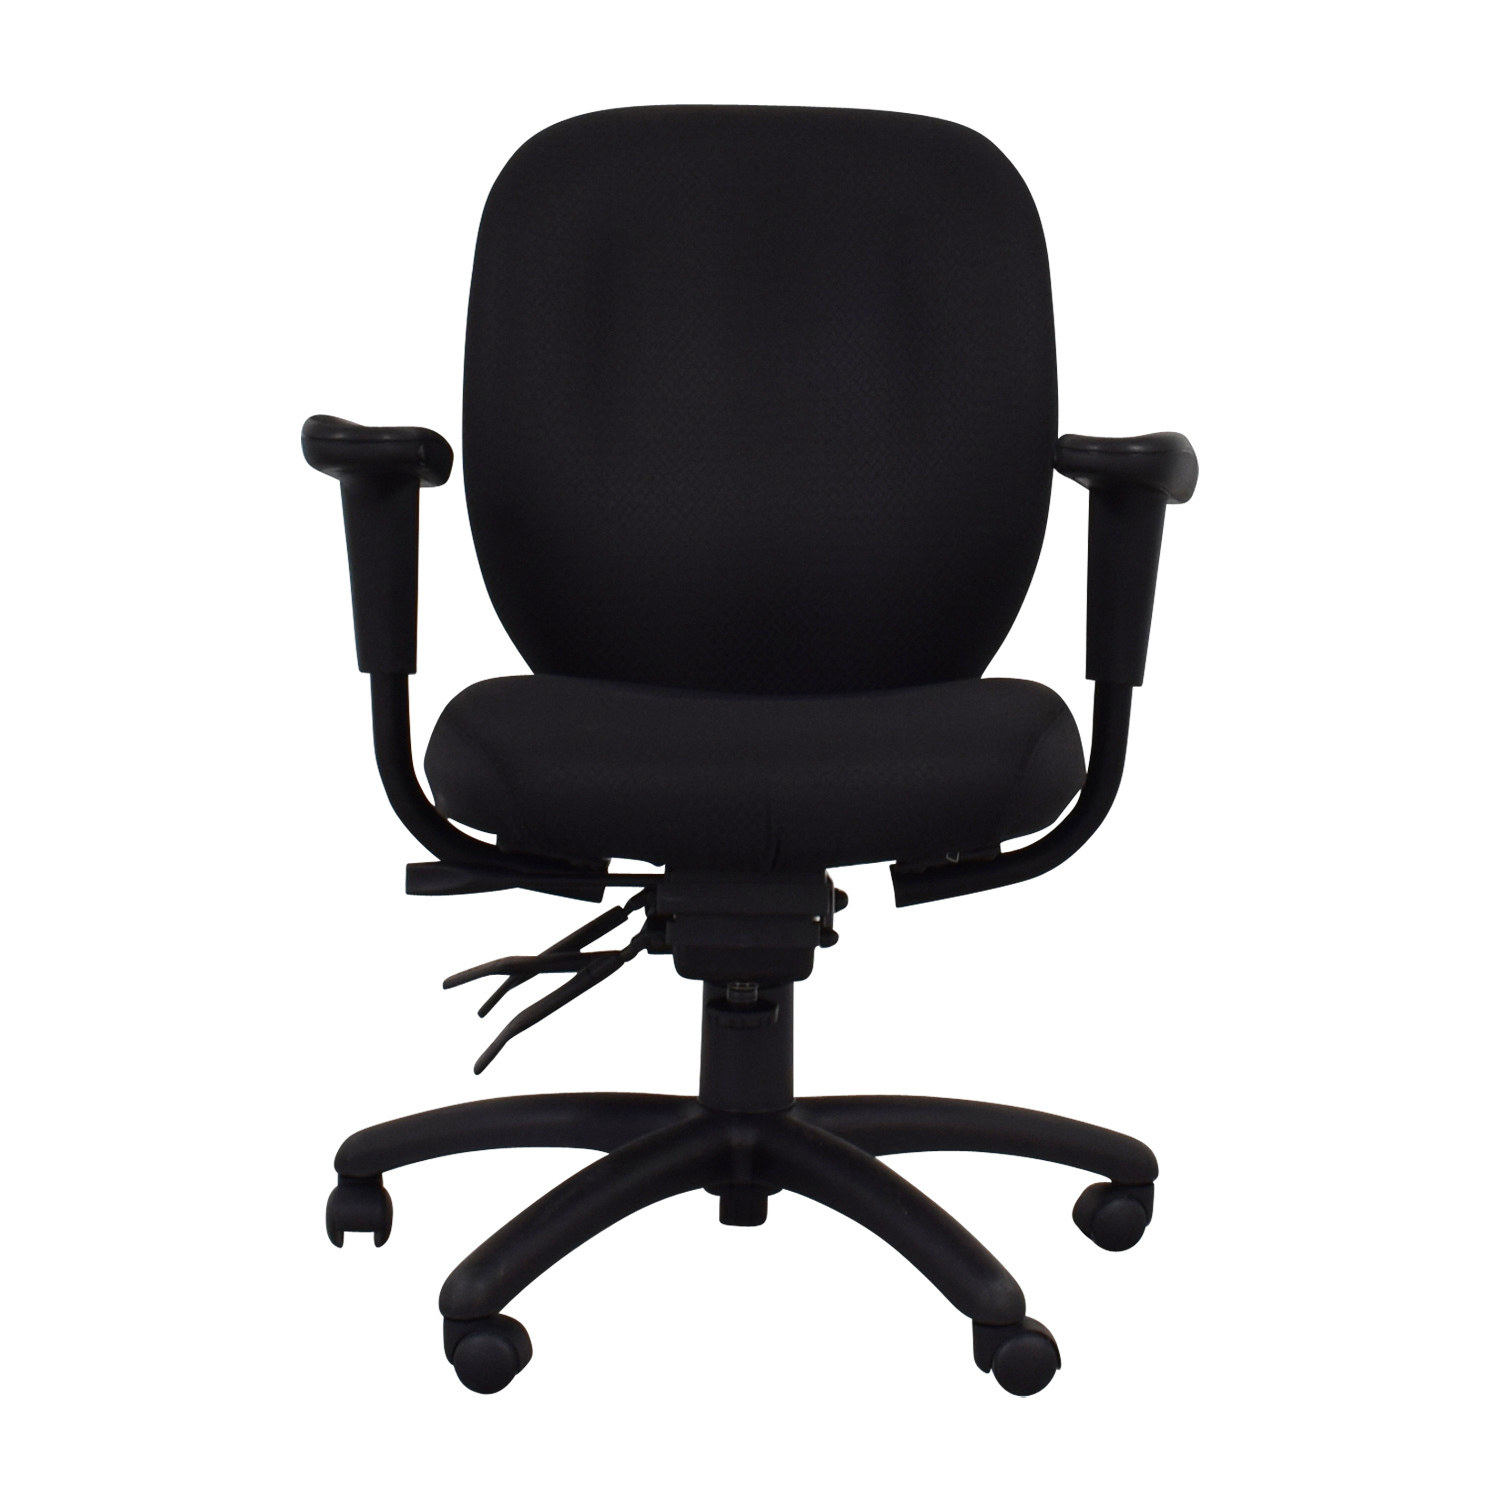 it you chair std leather sale executive new our item have high pu office season reclining will nf is holiday desk furniture allow back brand ergonomic on for chairs ufd big